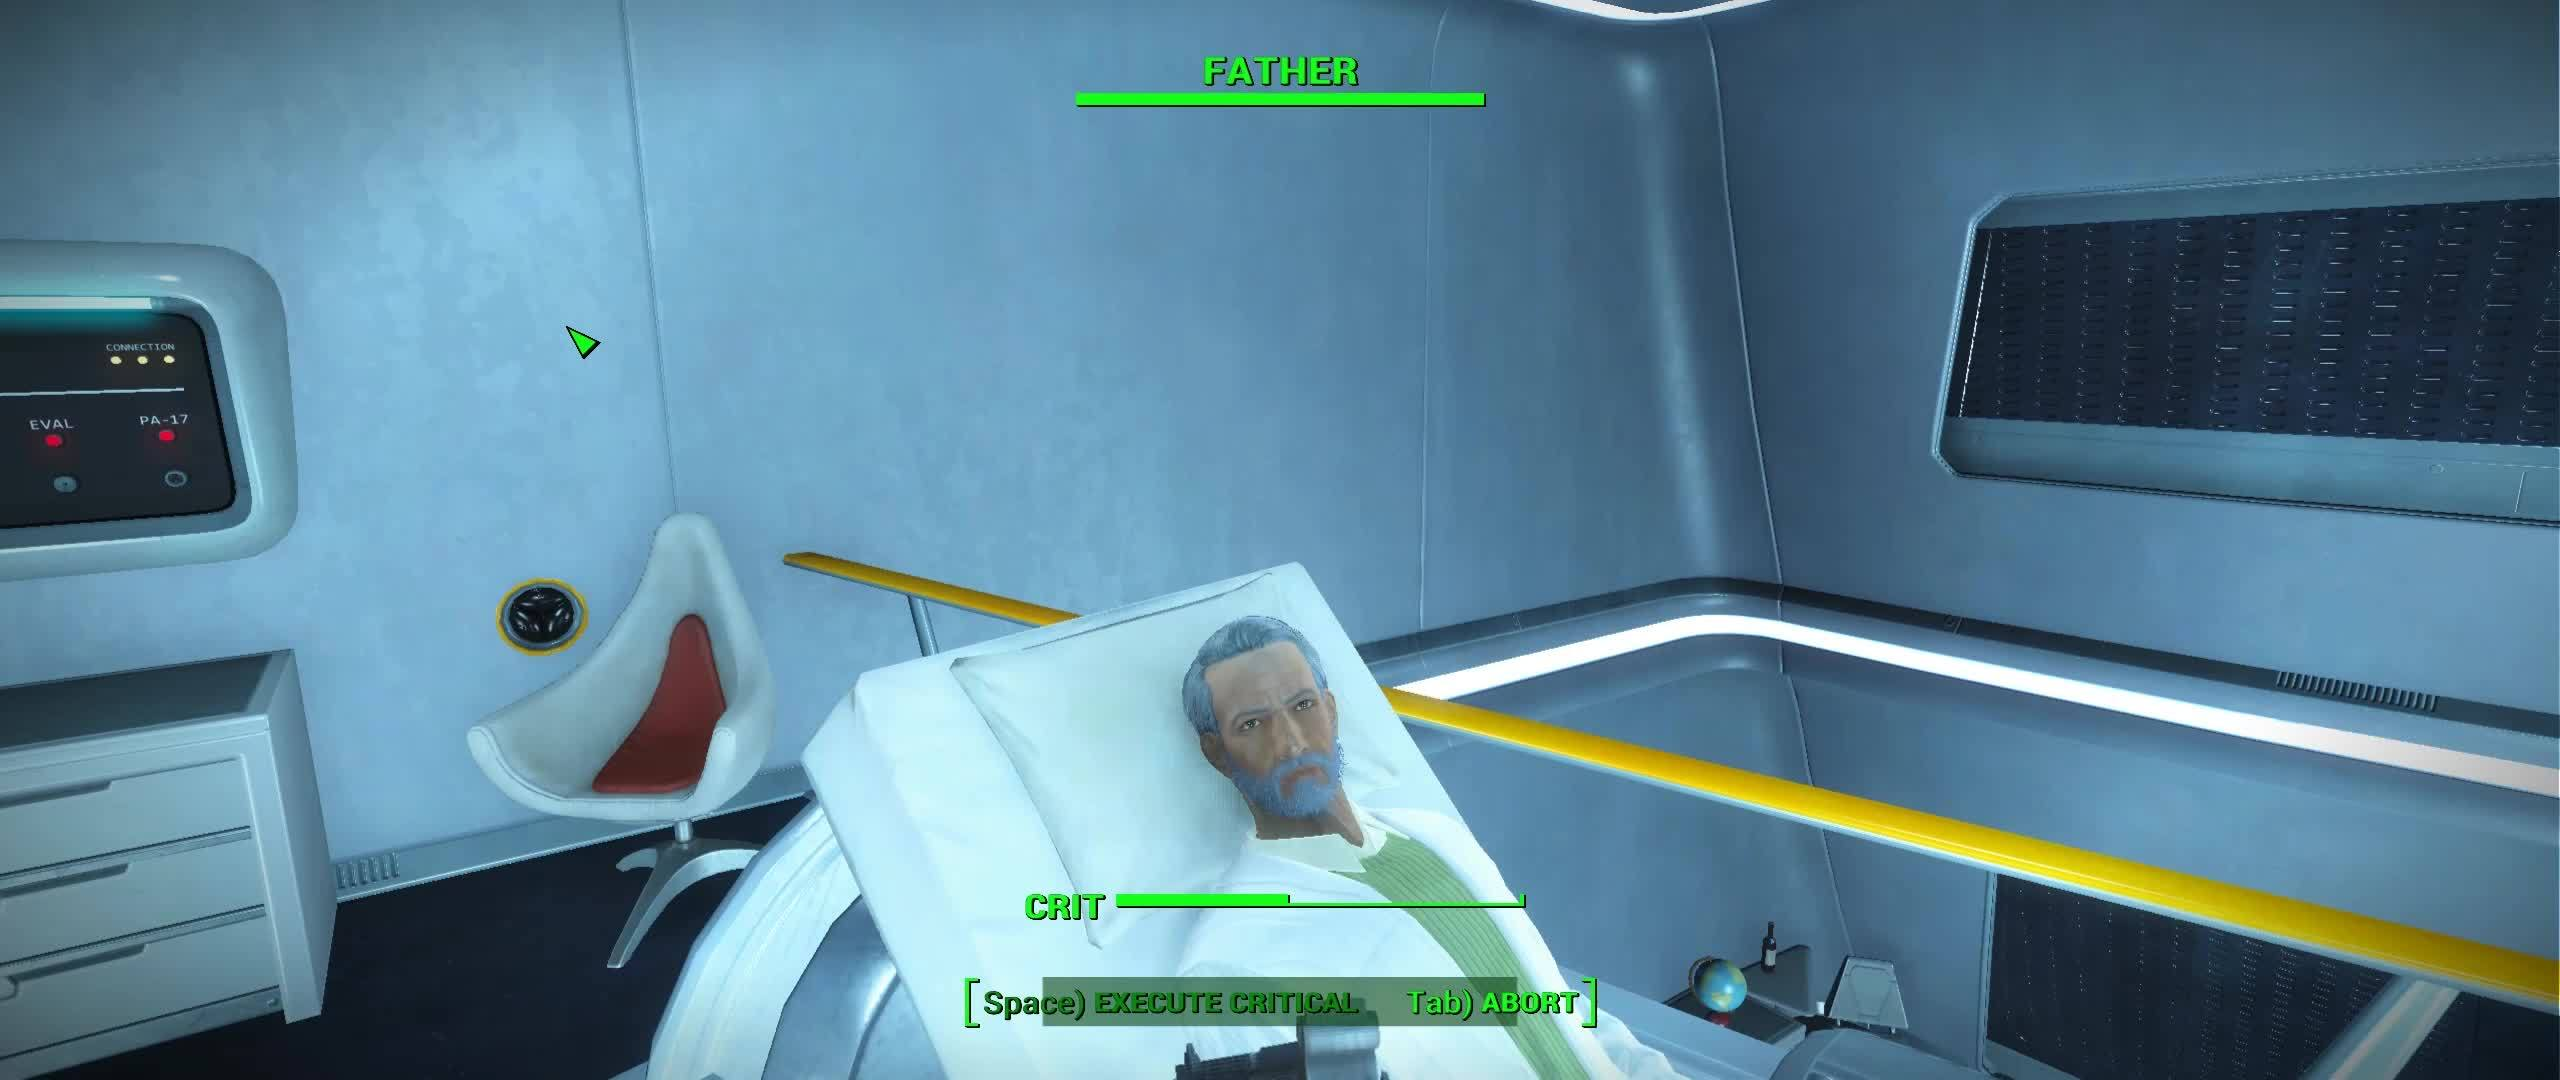 fo4, [FO4 Spoilers] Father of the Year GIFs